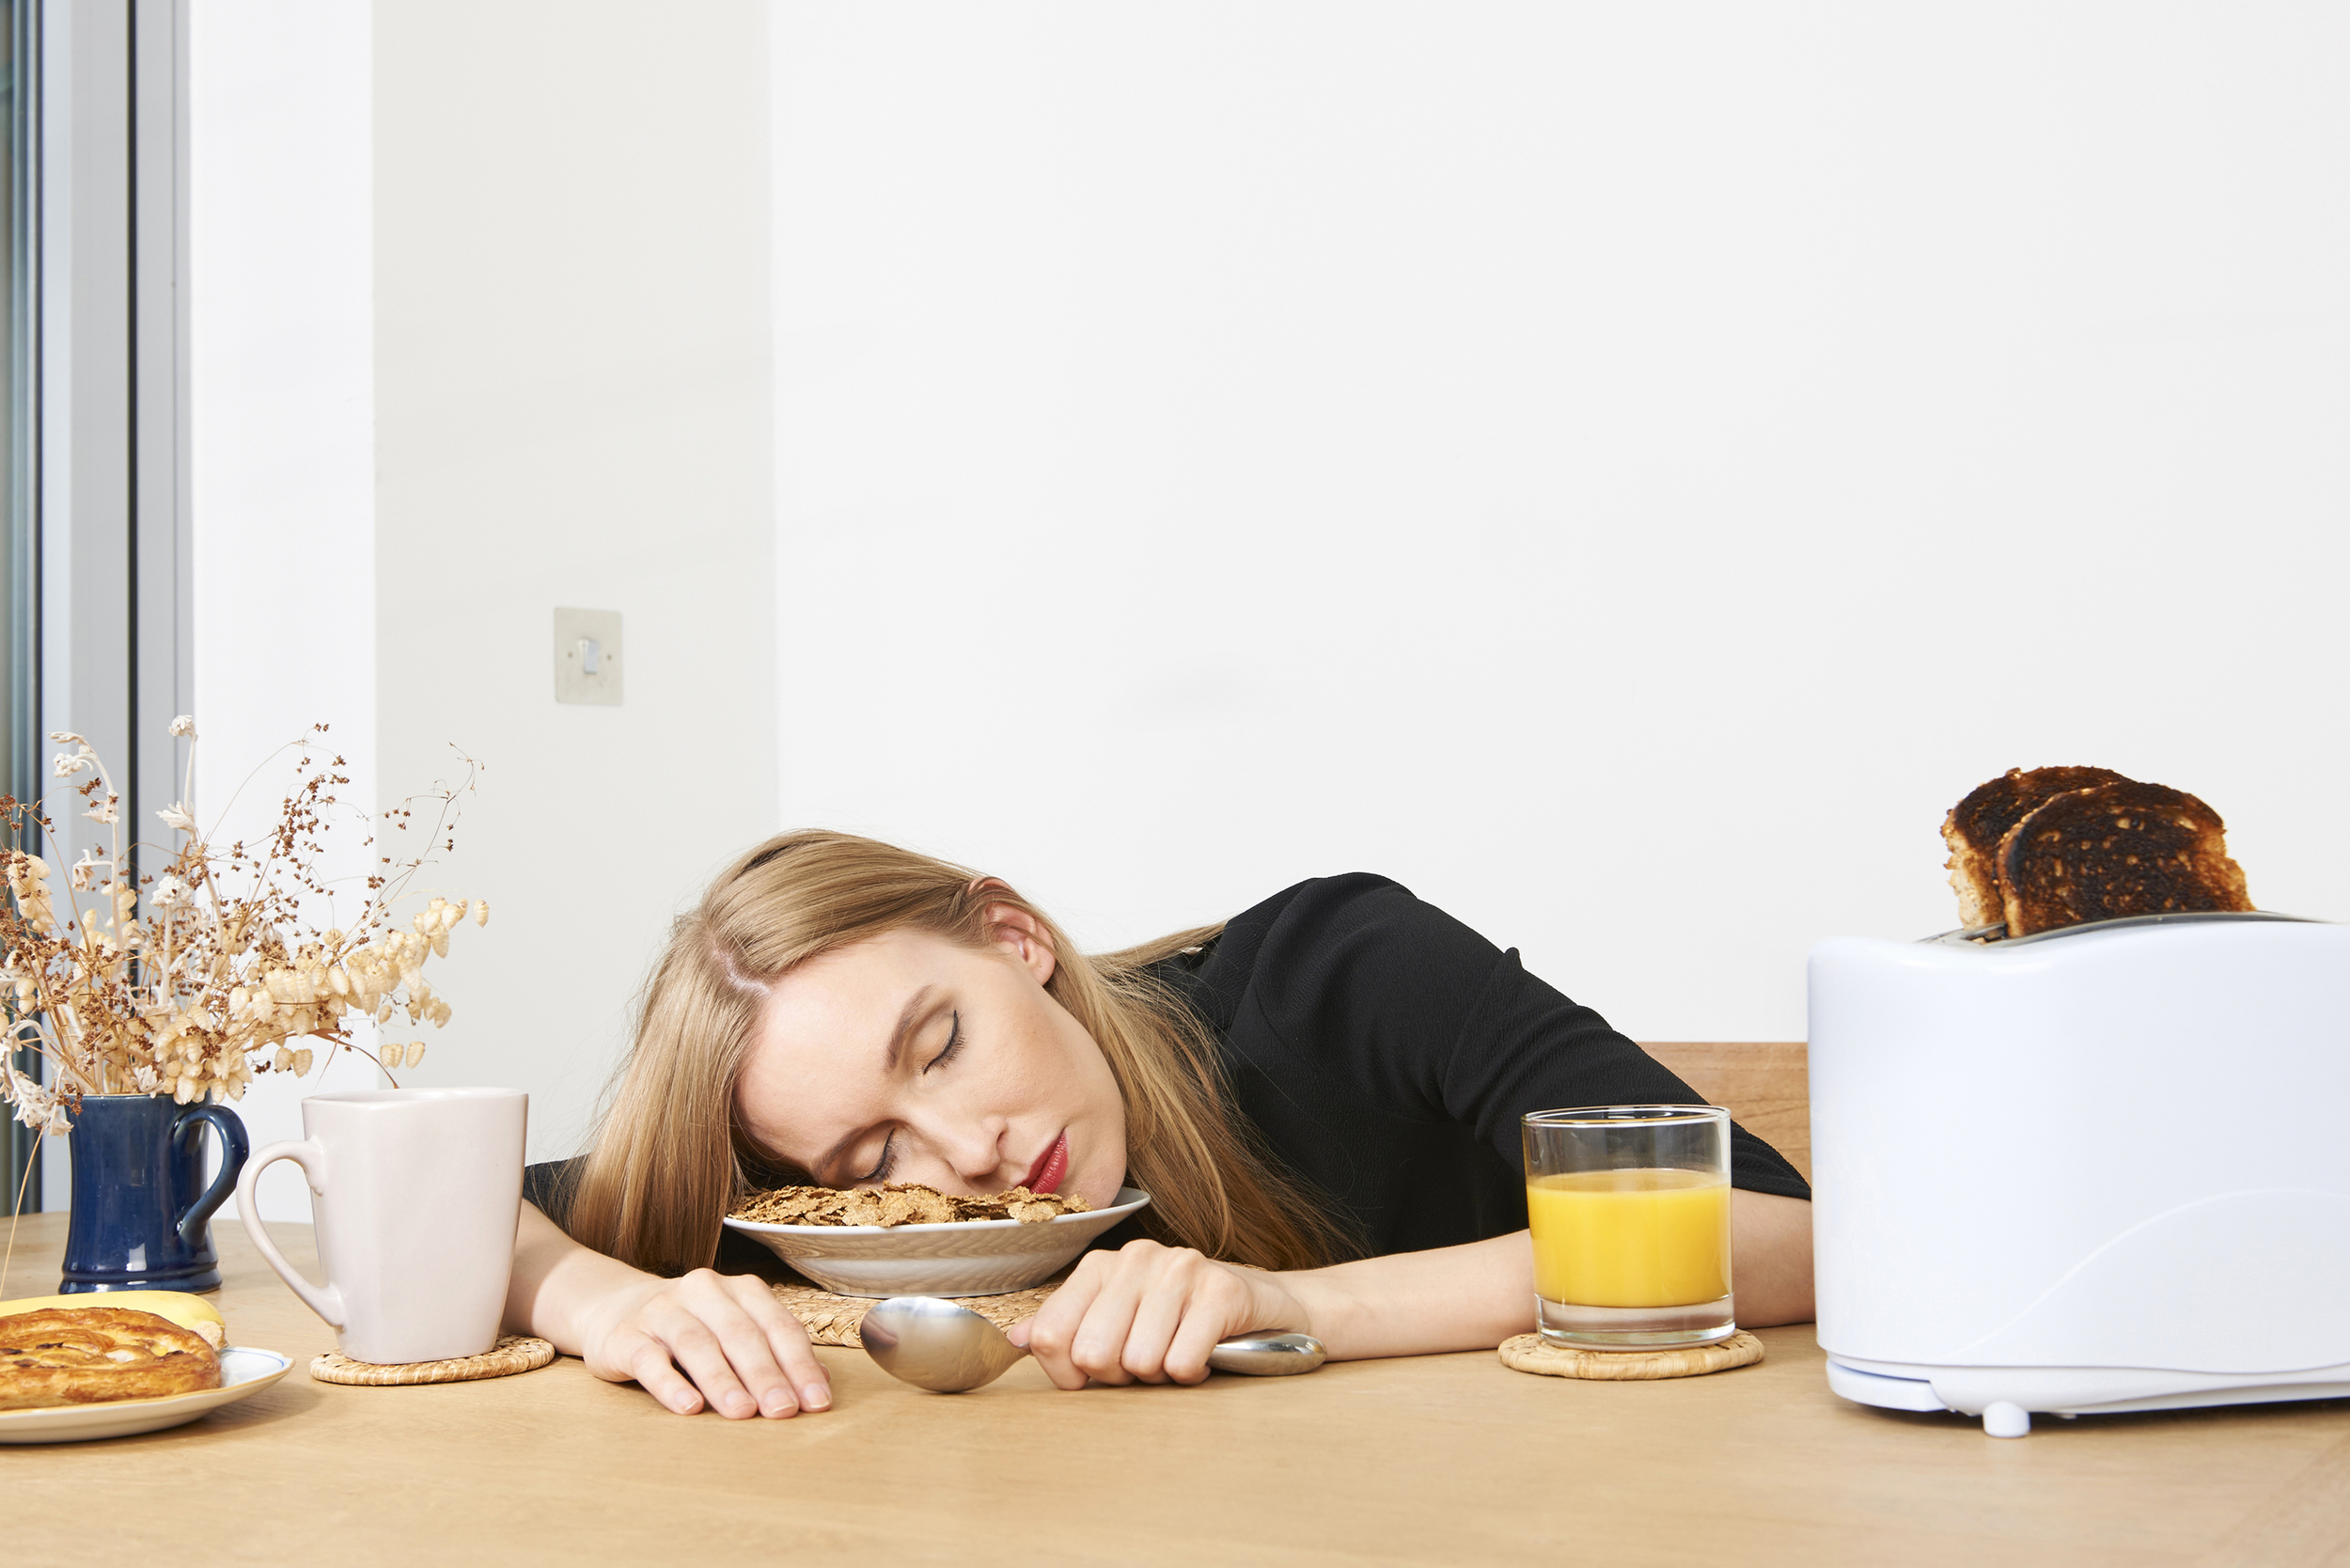 Shoot for ResMed 'Do it in bed' campaign 'Burnt Breakfast'